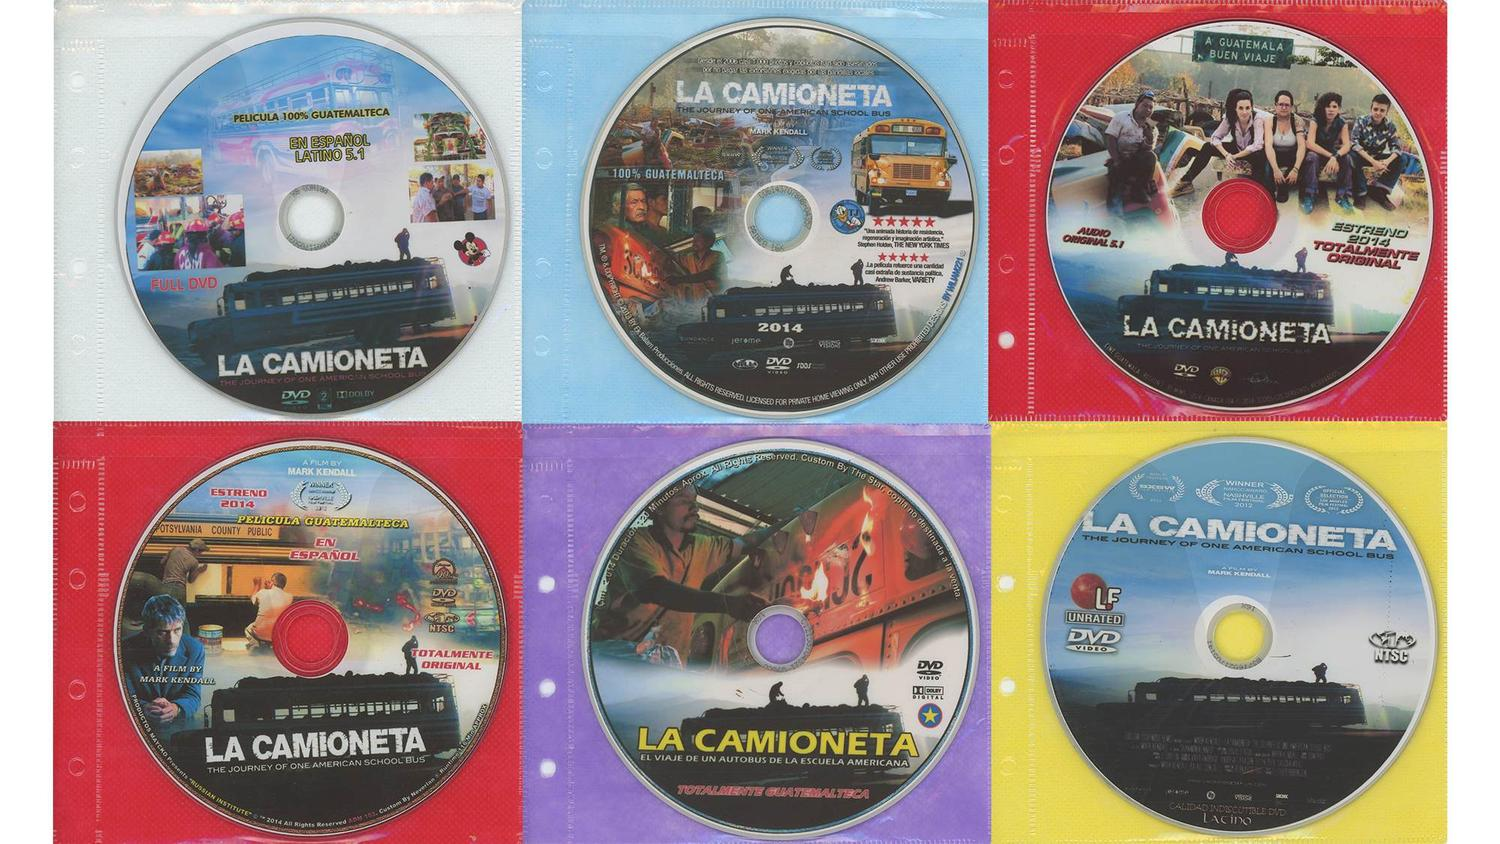 In conjunction with the theatrical release in Guatemala, a copy of LA CAMIONETA was shared with leading DVD pirates in Guatemala City, making the film widely accessible to Guatemala's working class. PROXY is an ongoing project in which various pirated copies of the film found during subsequent trips at kiosks and on the streets are collected.Mark Kendall La Camioneta Film Proxy